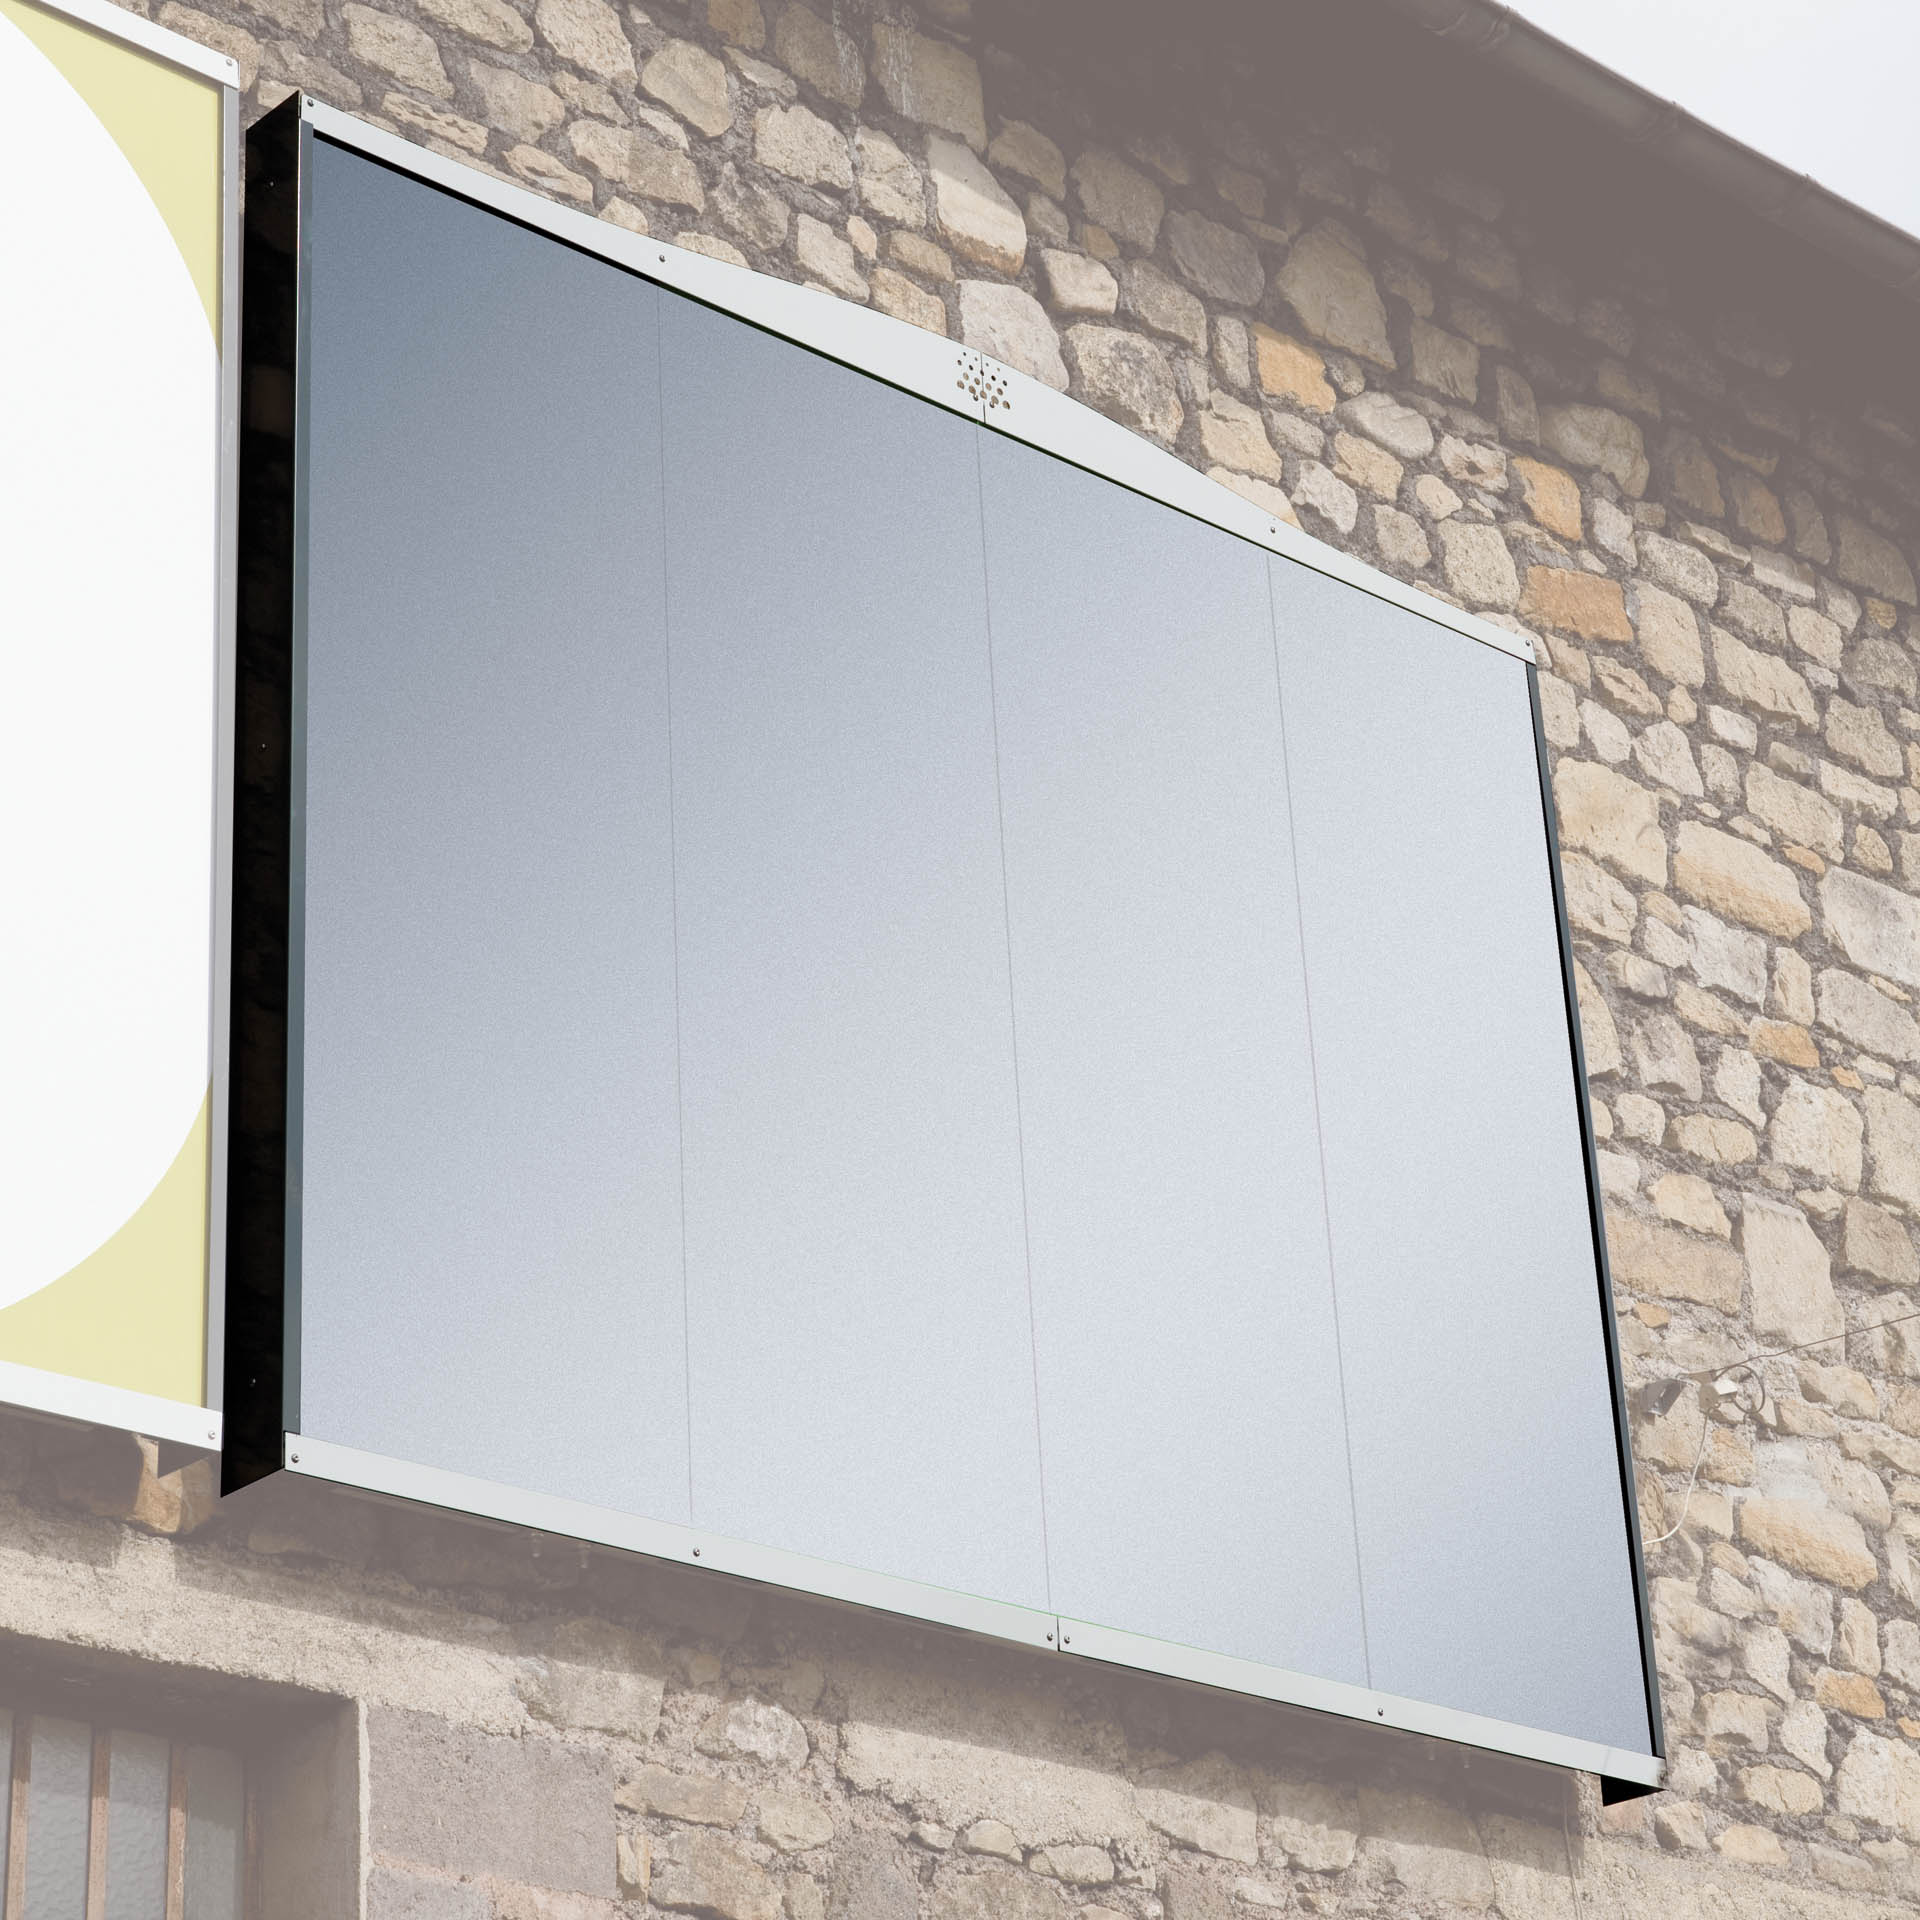 4m²  wall-mounted sign standard